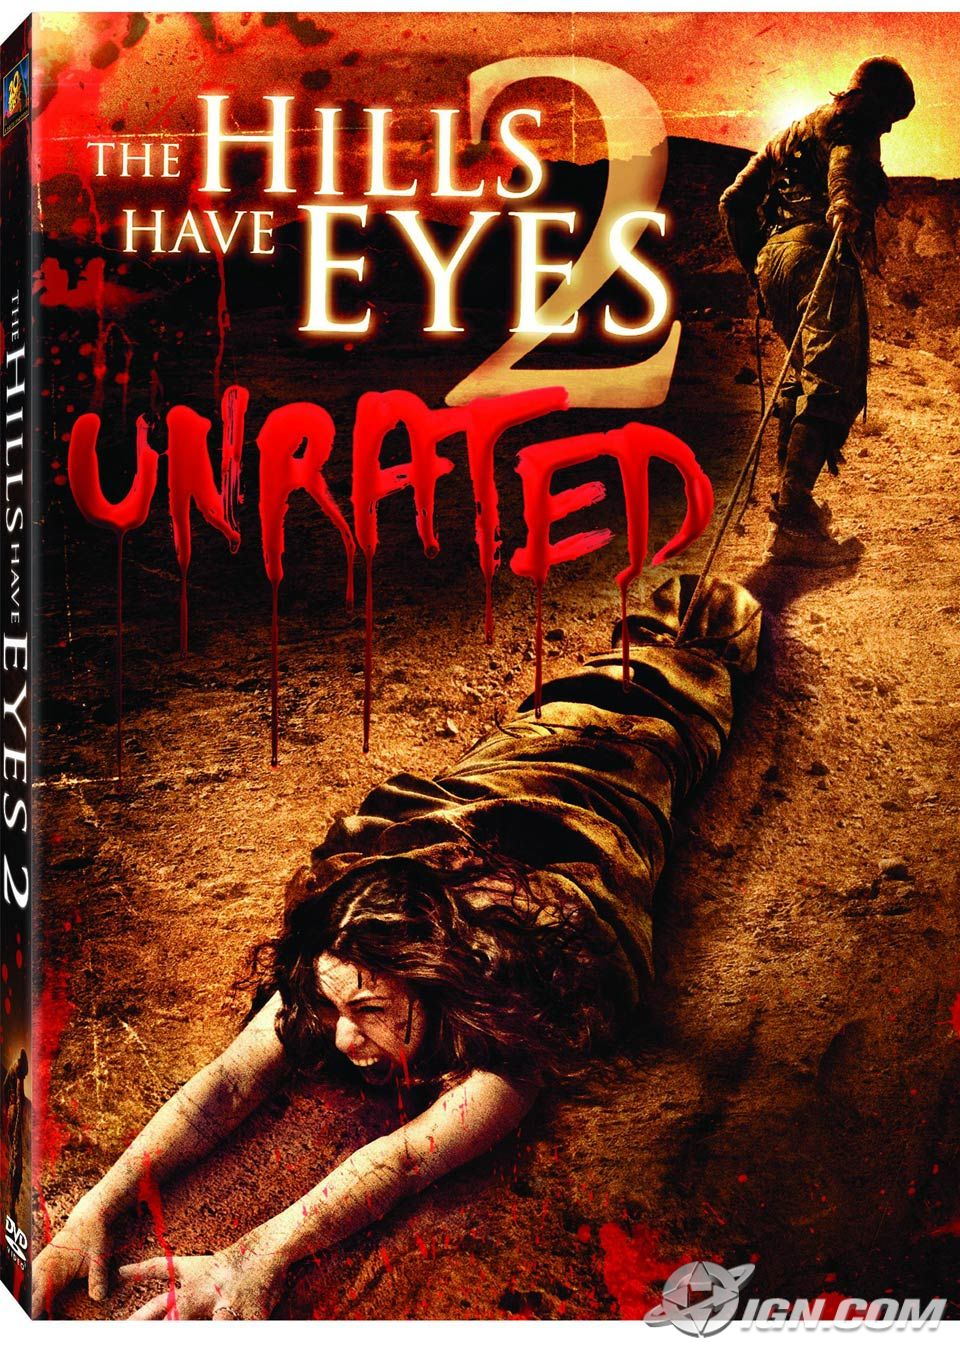 The Hills Have Eyes 2 2007 Unrated Pictures Photos Images IGN